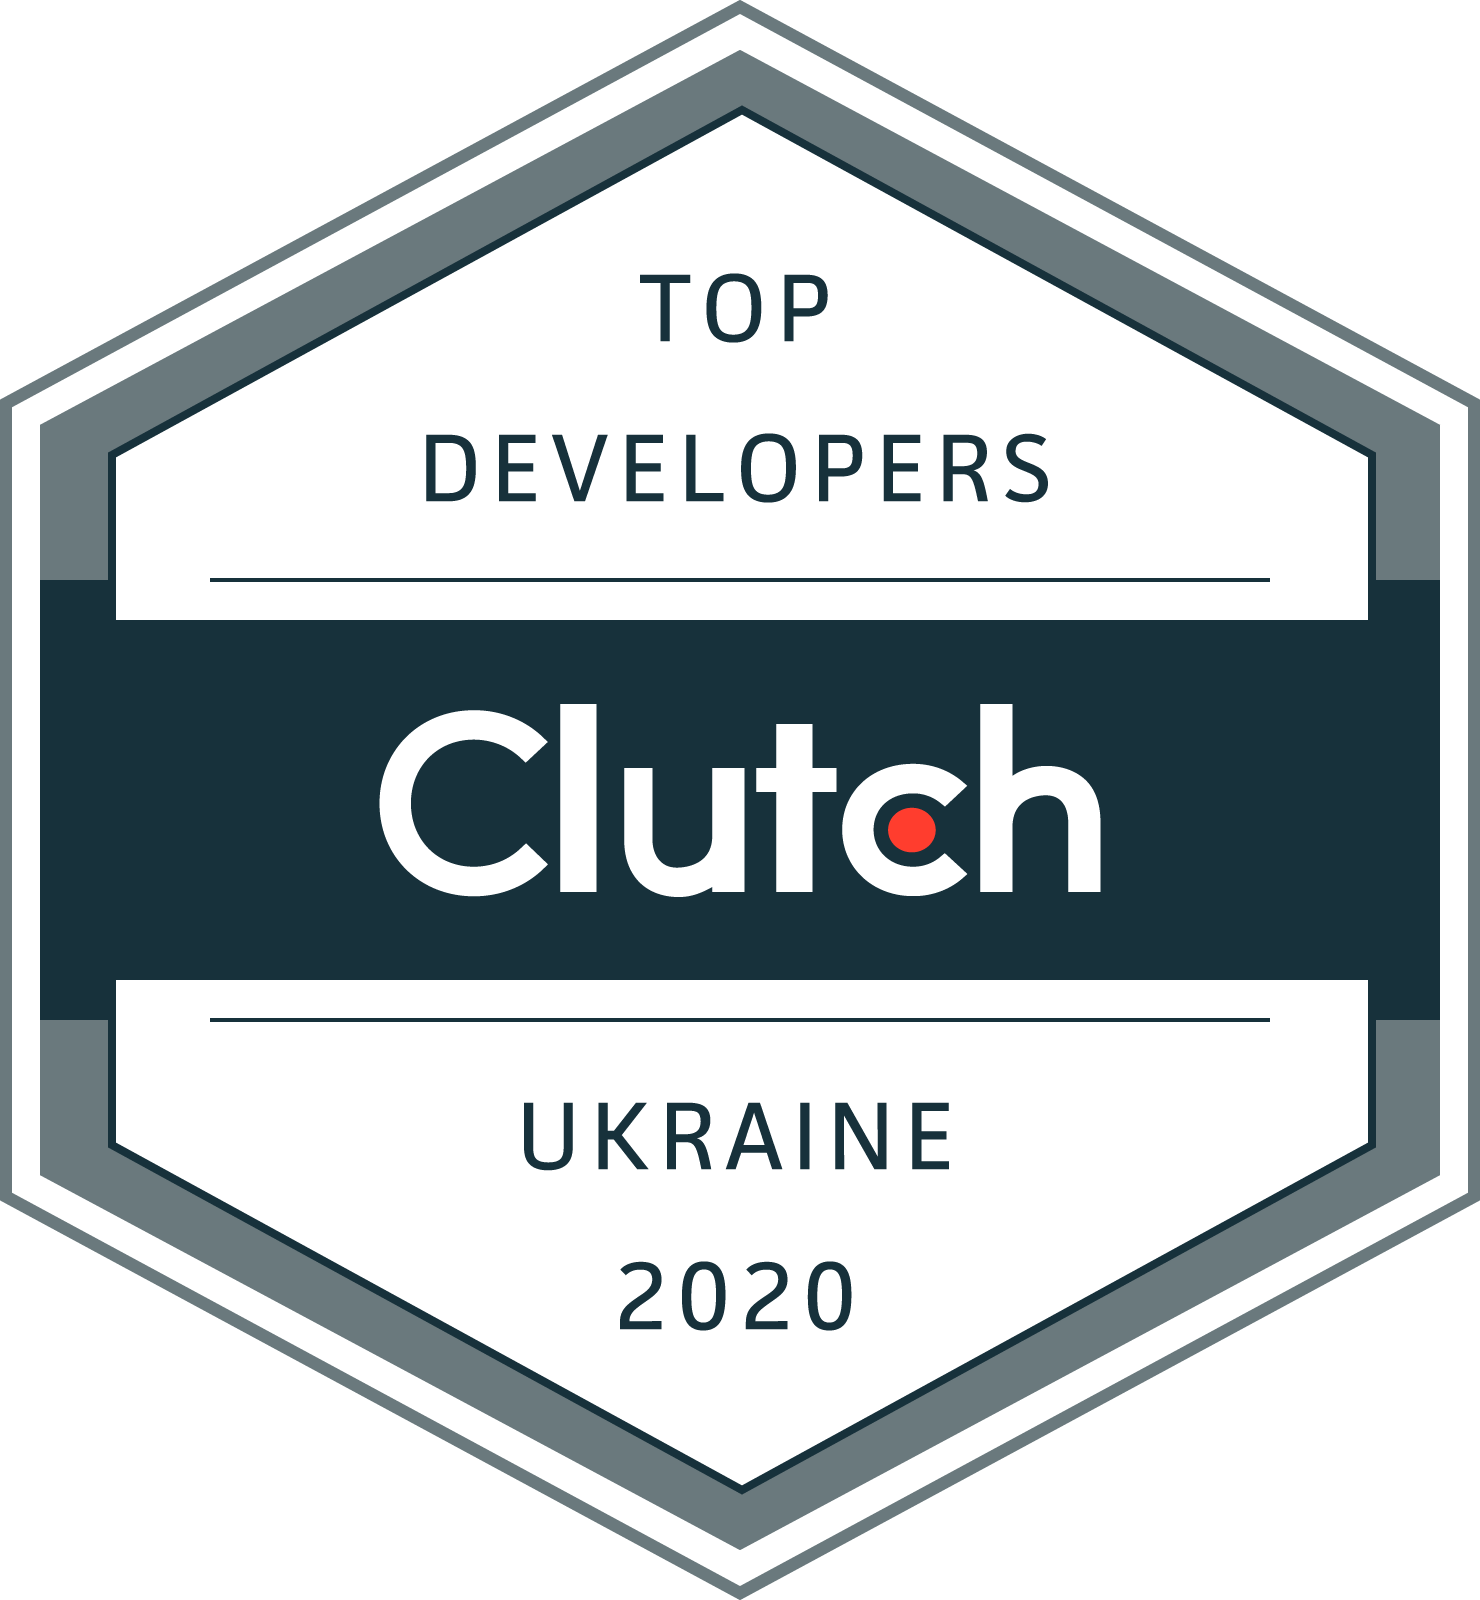 Web Help Agency Proud to be Named a Top Web Development Partner in Ukraine by Clutch!